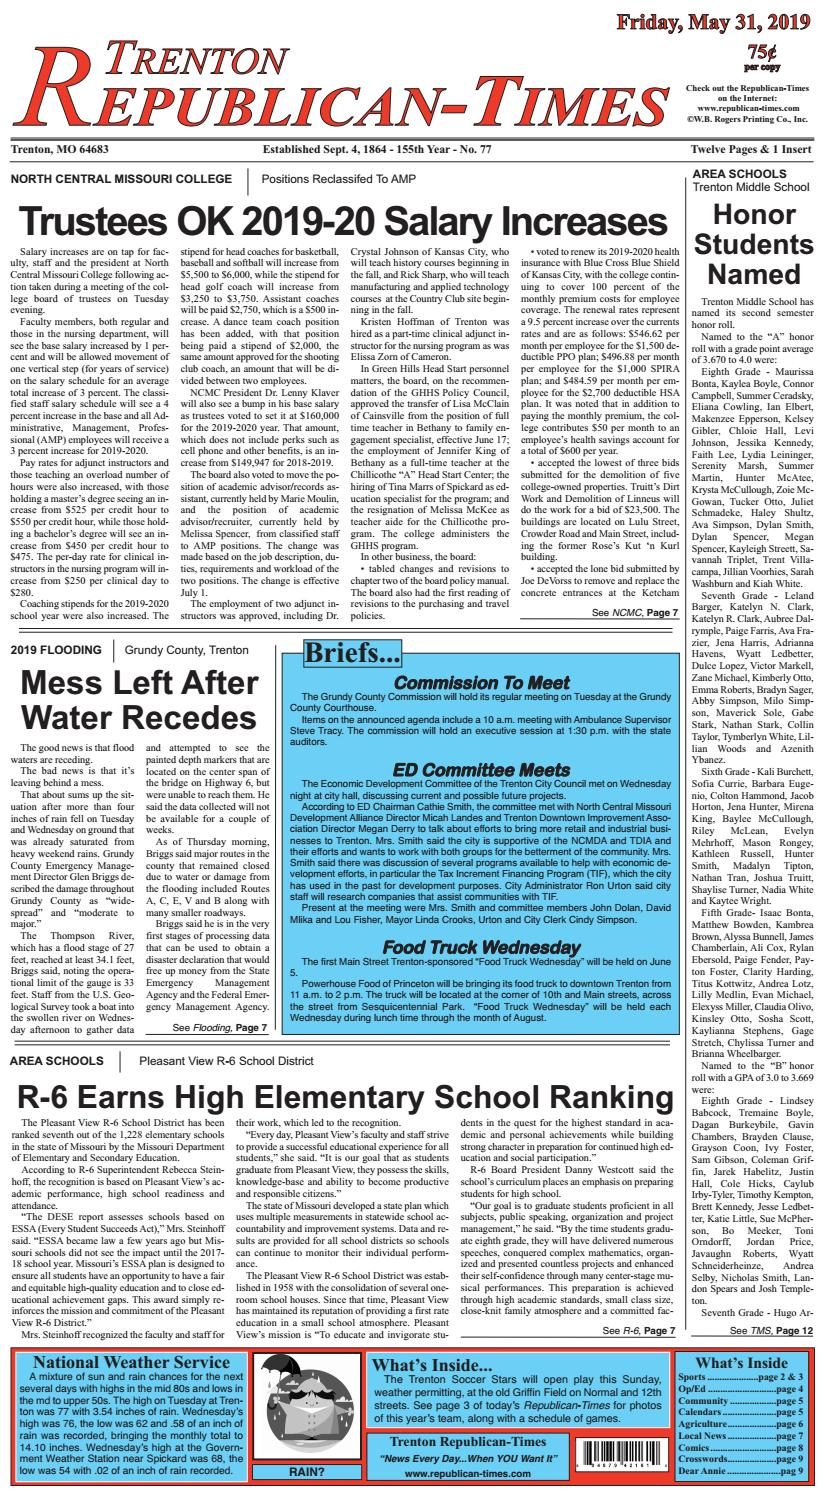 Trenton R-Times by Gallatin Publishing Company - issuu